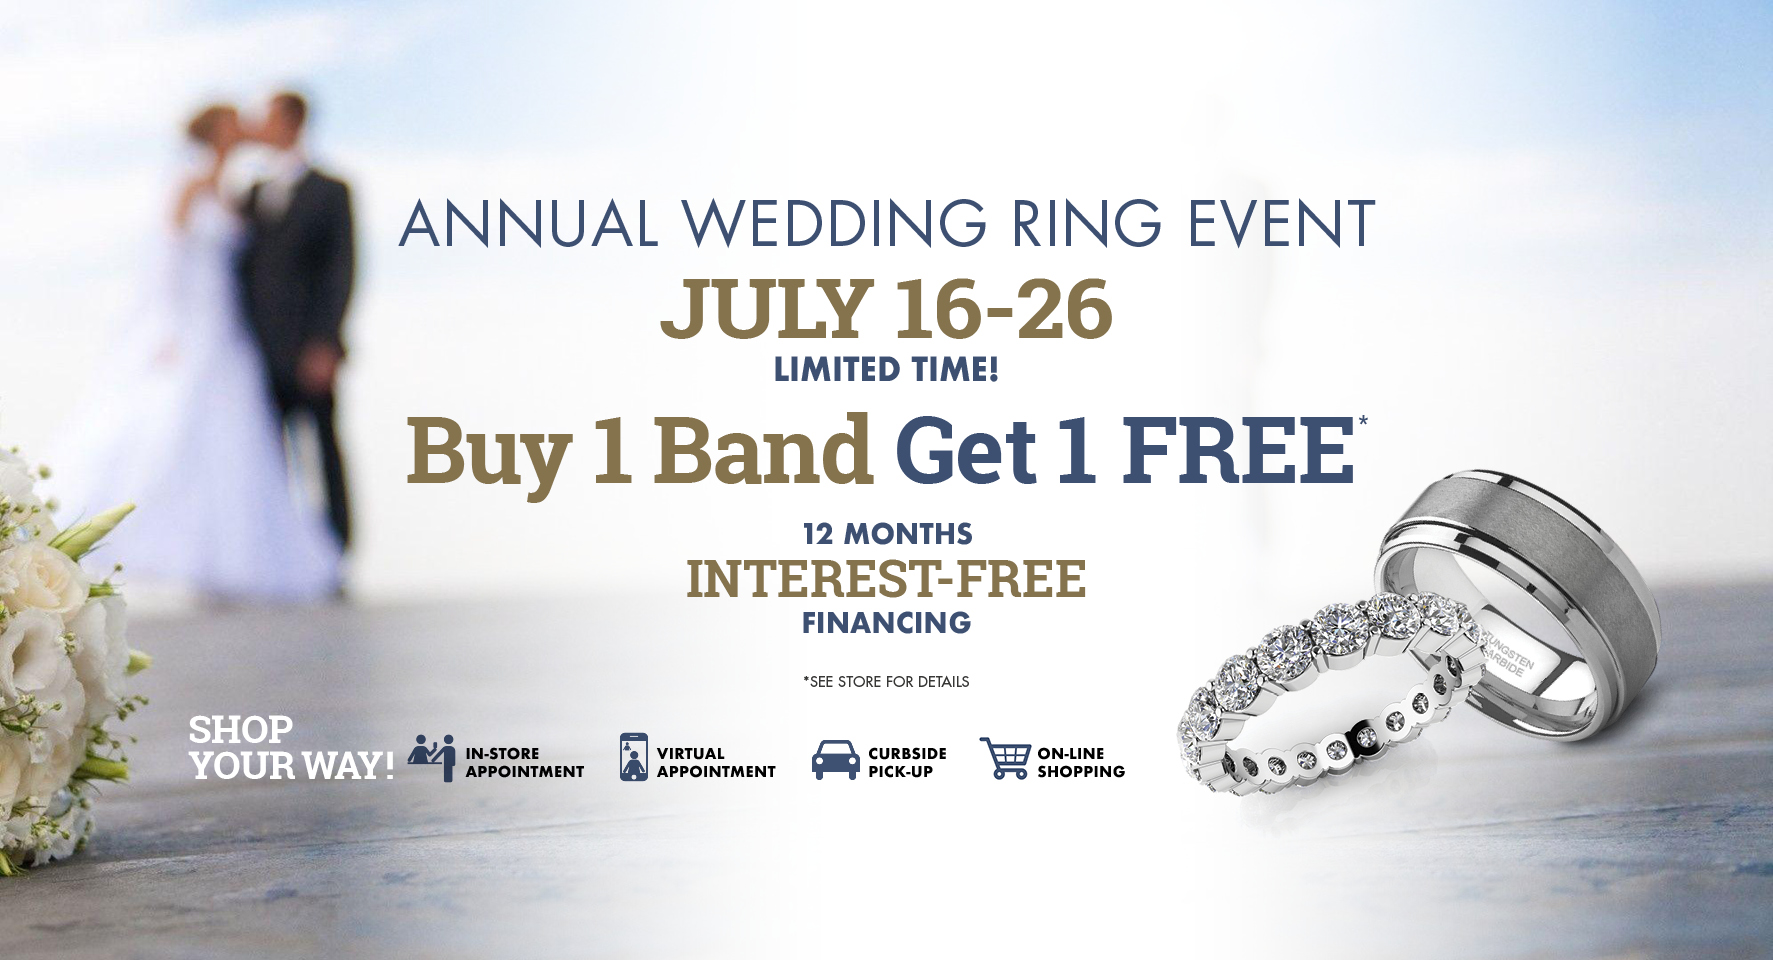 Annual Wedding Ring Event -- Shop your Way! But Don't Miss Out